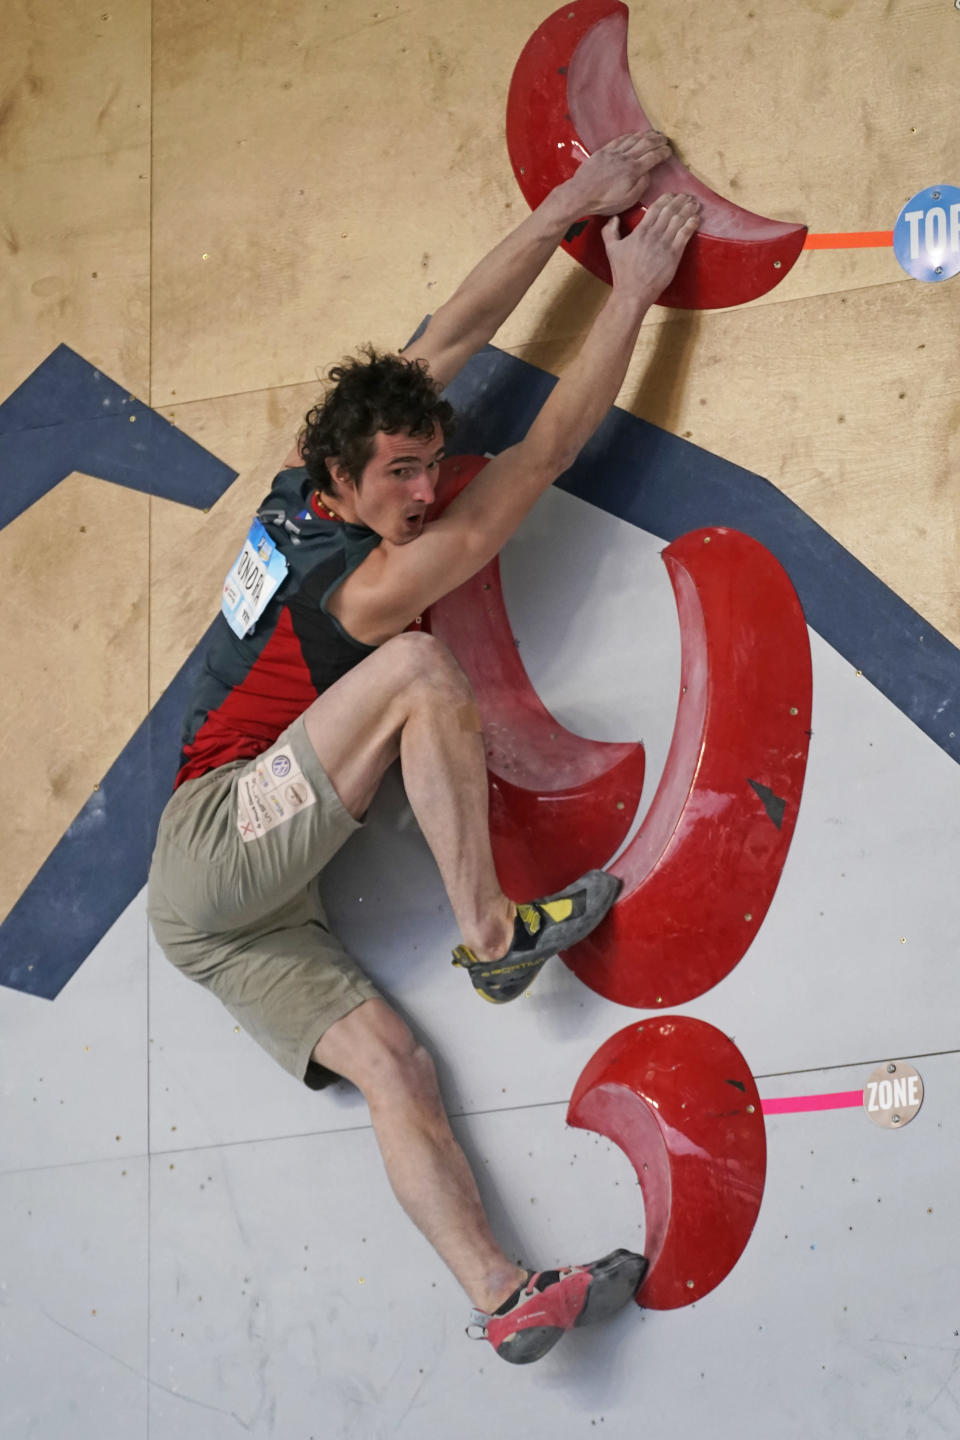 FILE - Adam Ondra, of the Czech Republic, climbs during the men's boulder finals at the climbing World Cup in Salt Lake City, in this May 22, 2021, file photo. Climbing has always been a niche sport among outdoor enthusiasts. Inclusion in the 2021 Tokyo Olympics will take it mainstream and the world will see just how difficult it is clinging to tiny hand holds with fingers and toes. (AP Photo/Rick Bowmer, File)